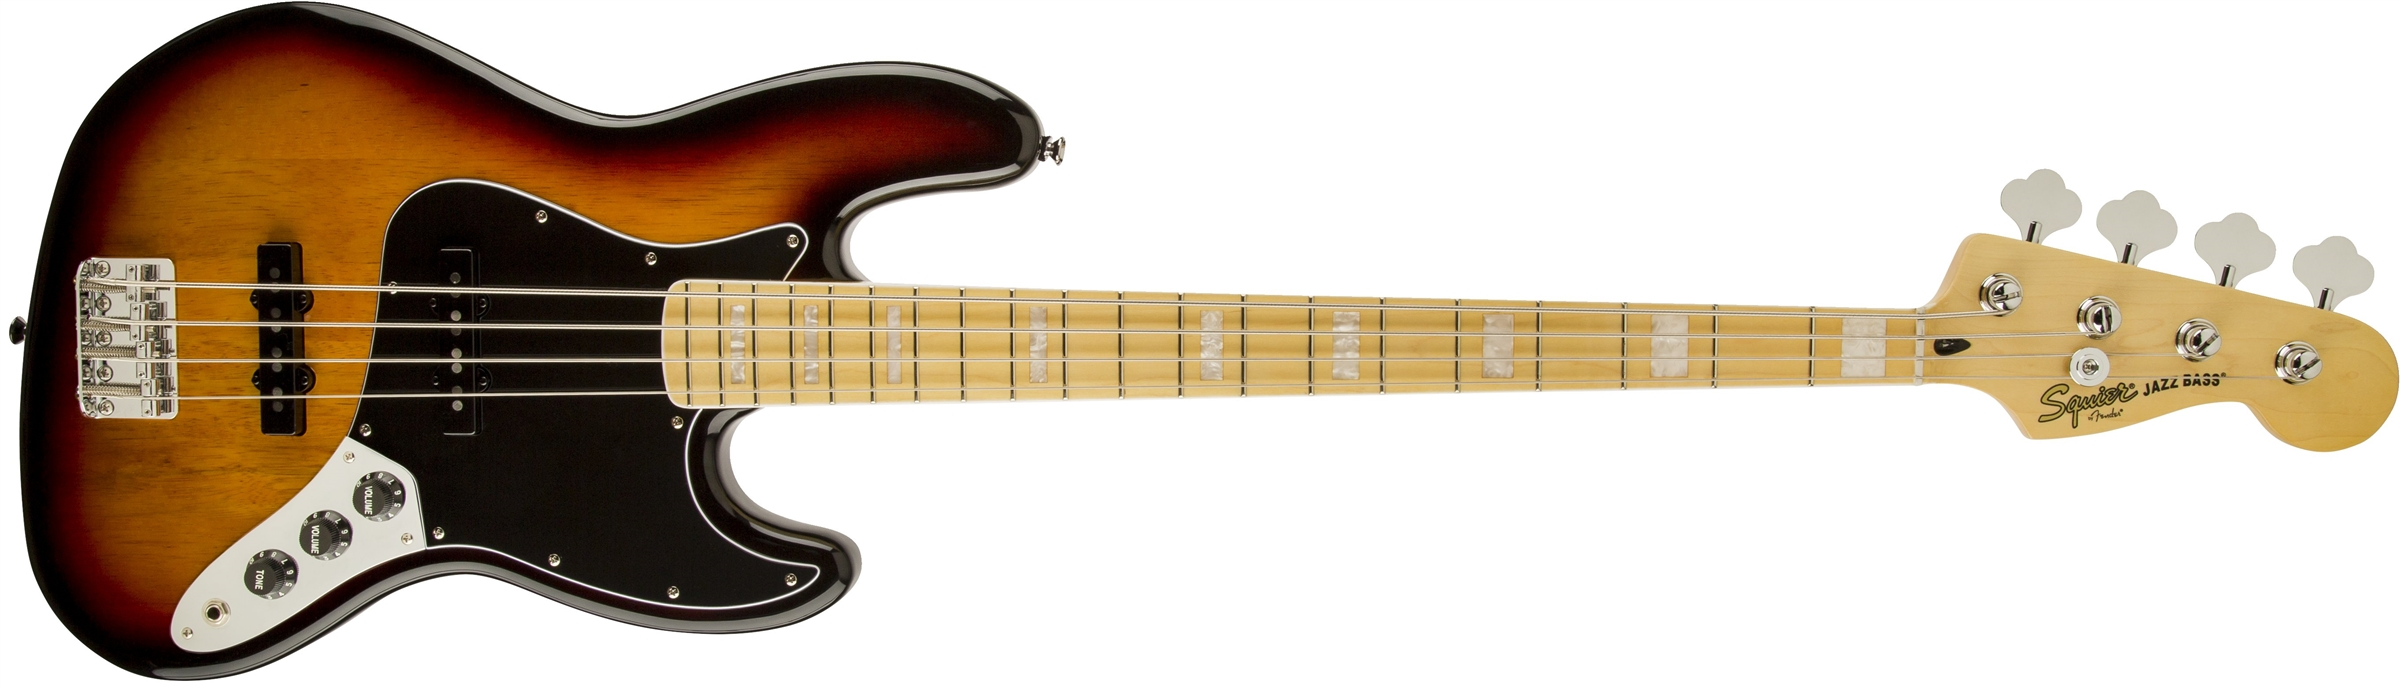 Squier 174 Vintage Modified Jazz Bass 174 77 Maple Fingerboard